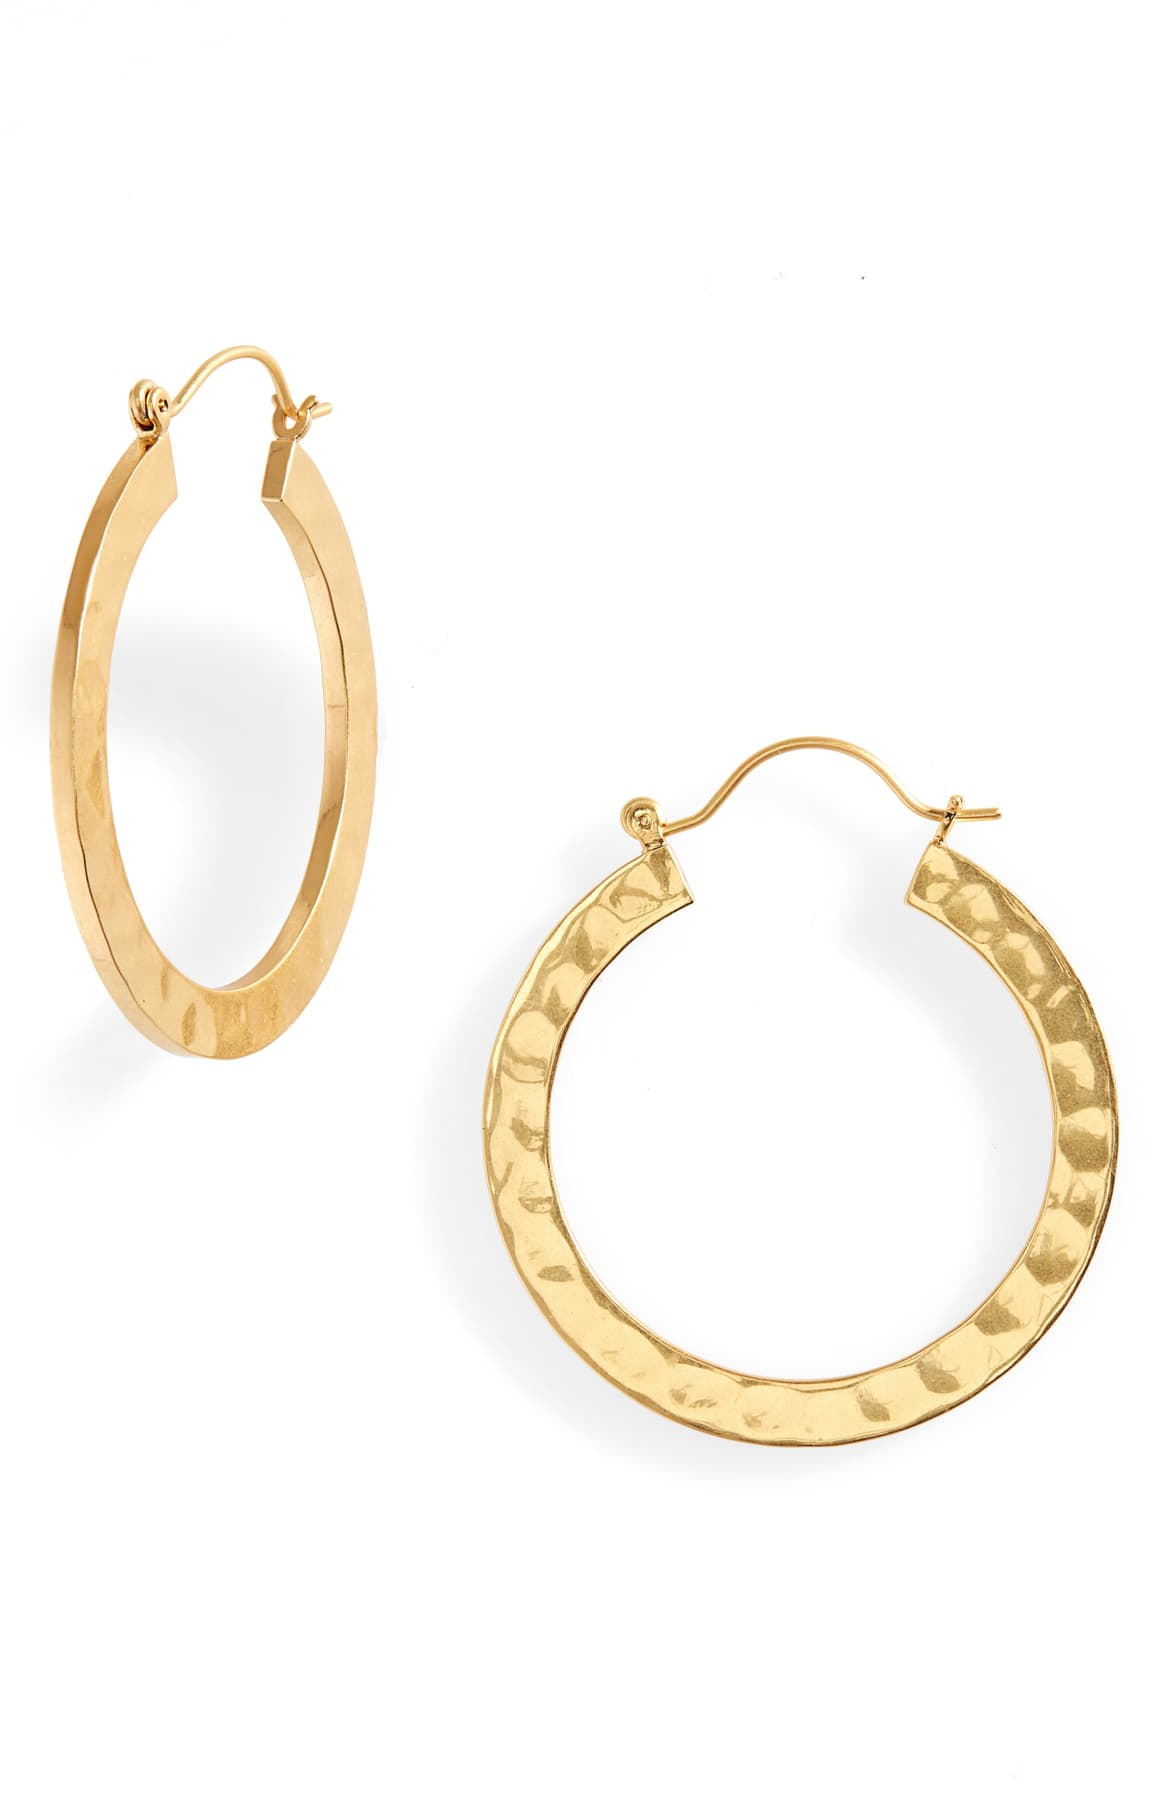 "<p>The hammered finish gives a cool artisanal look to gleaming hoop earrings to wear with everything. $28.{&nbsp;}<a  href=""https://shop.nordstrom.com/s/madewell-hammered-hoop-earrings/5363735/full?origin=keywordsearch-personalizedsort&breadcrumb=Home%2FAll%20Results&color=vintage%20gold"" target=""_blank"" title=""https://shop.nordstrom.com/s/madewell-hammered-hoop-earrings/5363735/full?origin=keywordsearch-personalizedsort&breadcrumb=Home%2FAll%20Results&color=vintage%20gold"">Shop it{&nbsp;}</a>(Image: Nordstrom){&nbsp;}</p>"